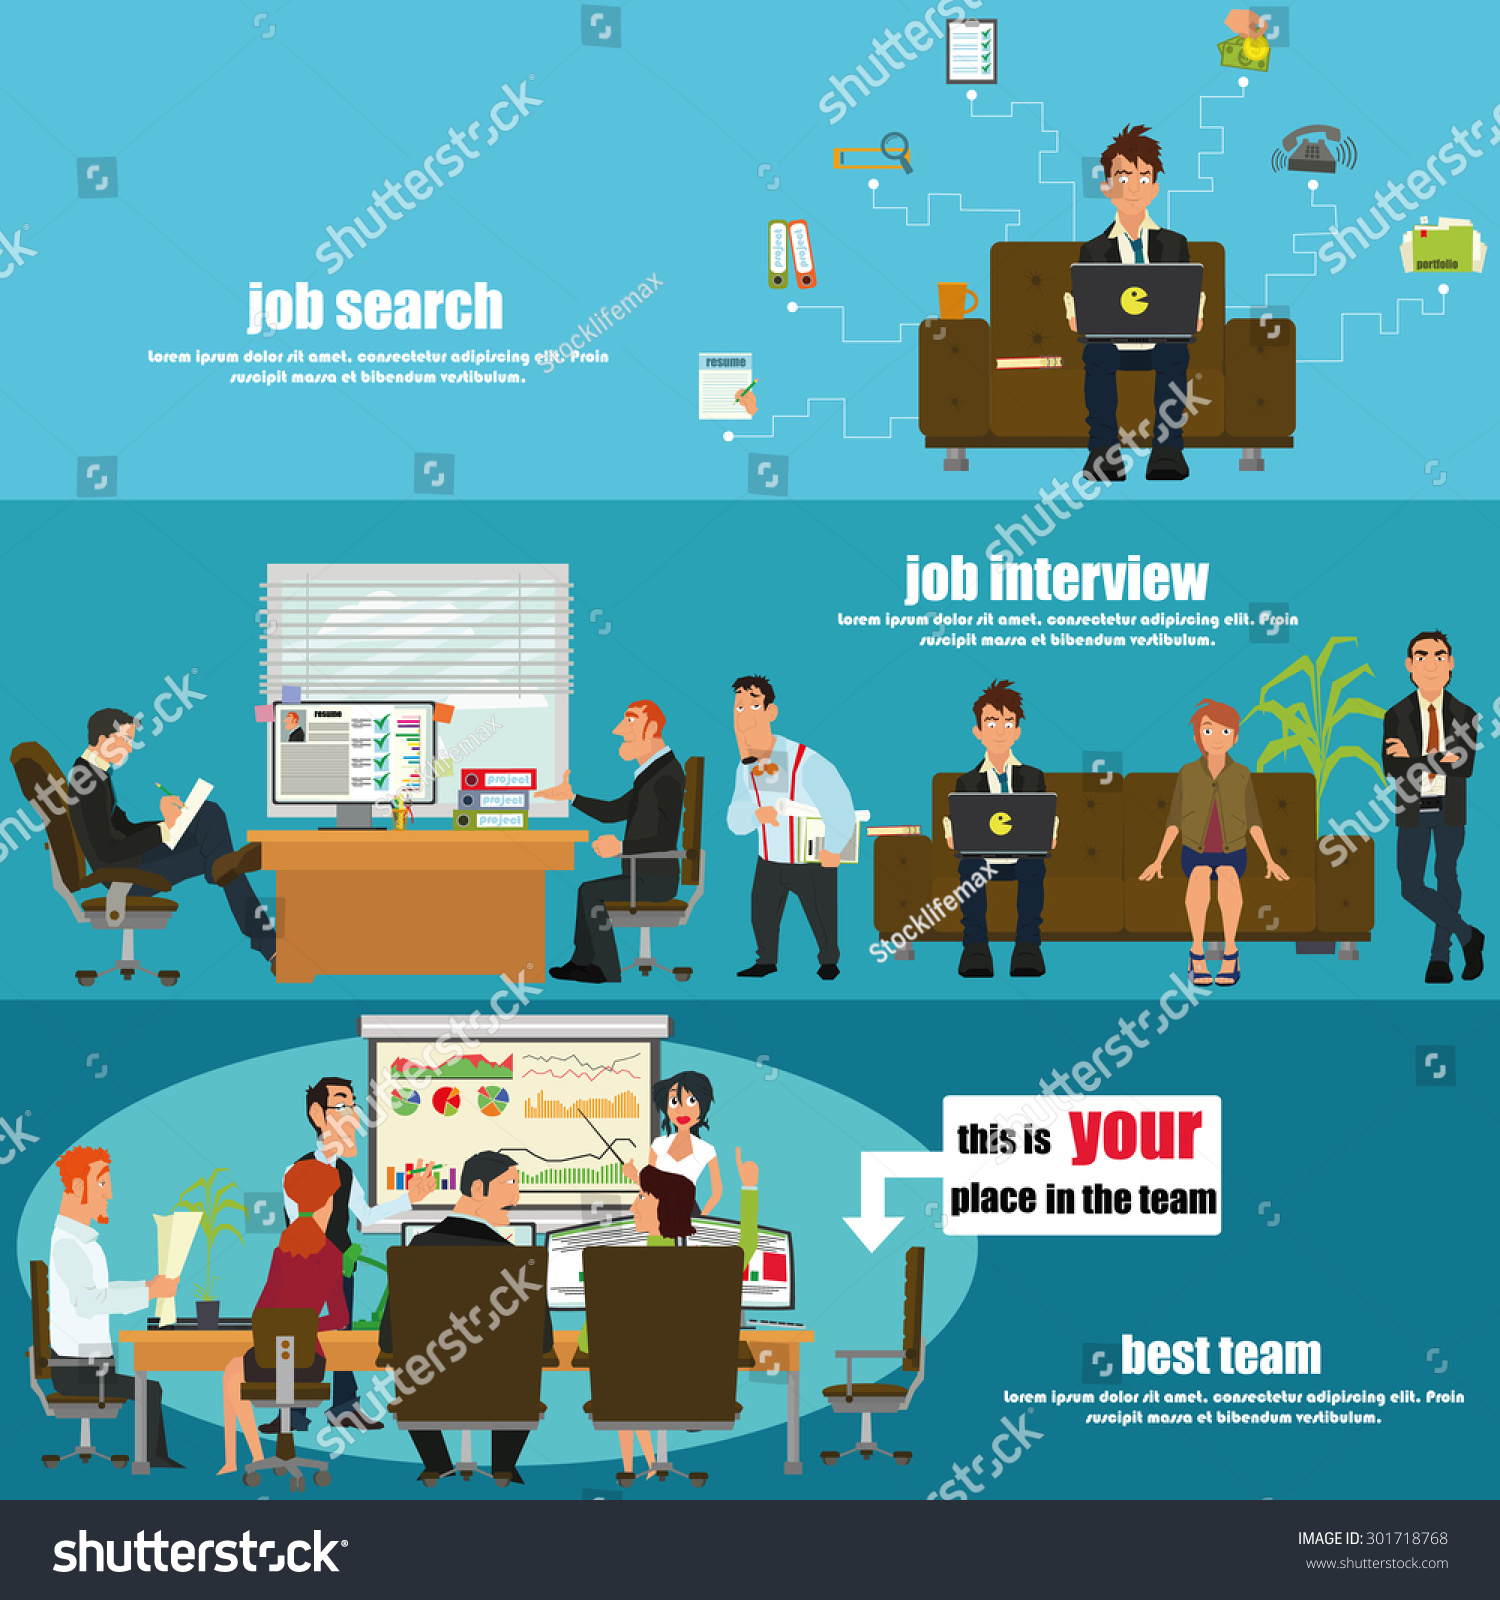 recruitment flat banner set job search stock vector 301718768 recruitment flat banner set job search job interview and your place in the team